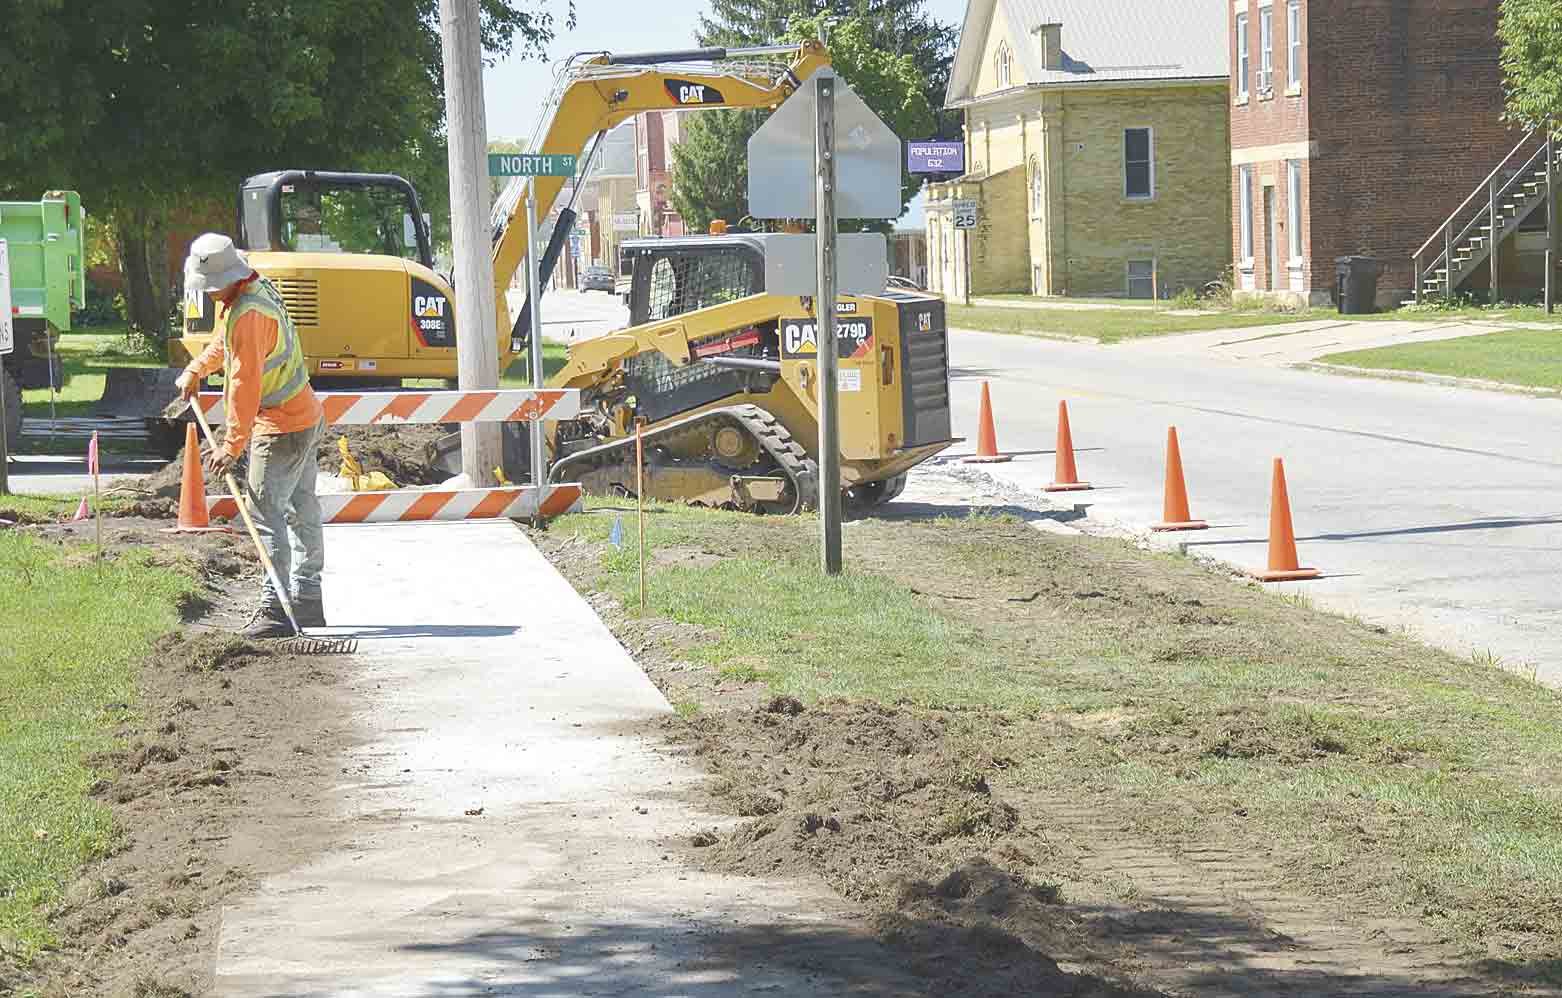 Installing new cement sidewalks and ramps in Clermont is part of the Highway 18 repair and repaving project by the Iowa DOT.Work to continue until November on Highway 18By Jack Swansonjswanson@fayettecountynewspapers.comRegular commuters from Clermont to...